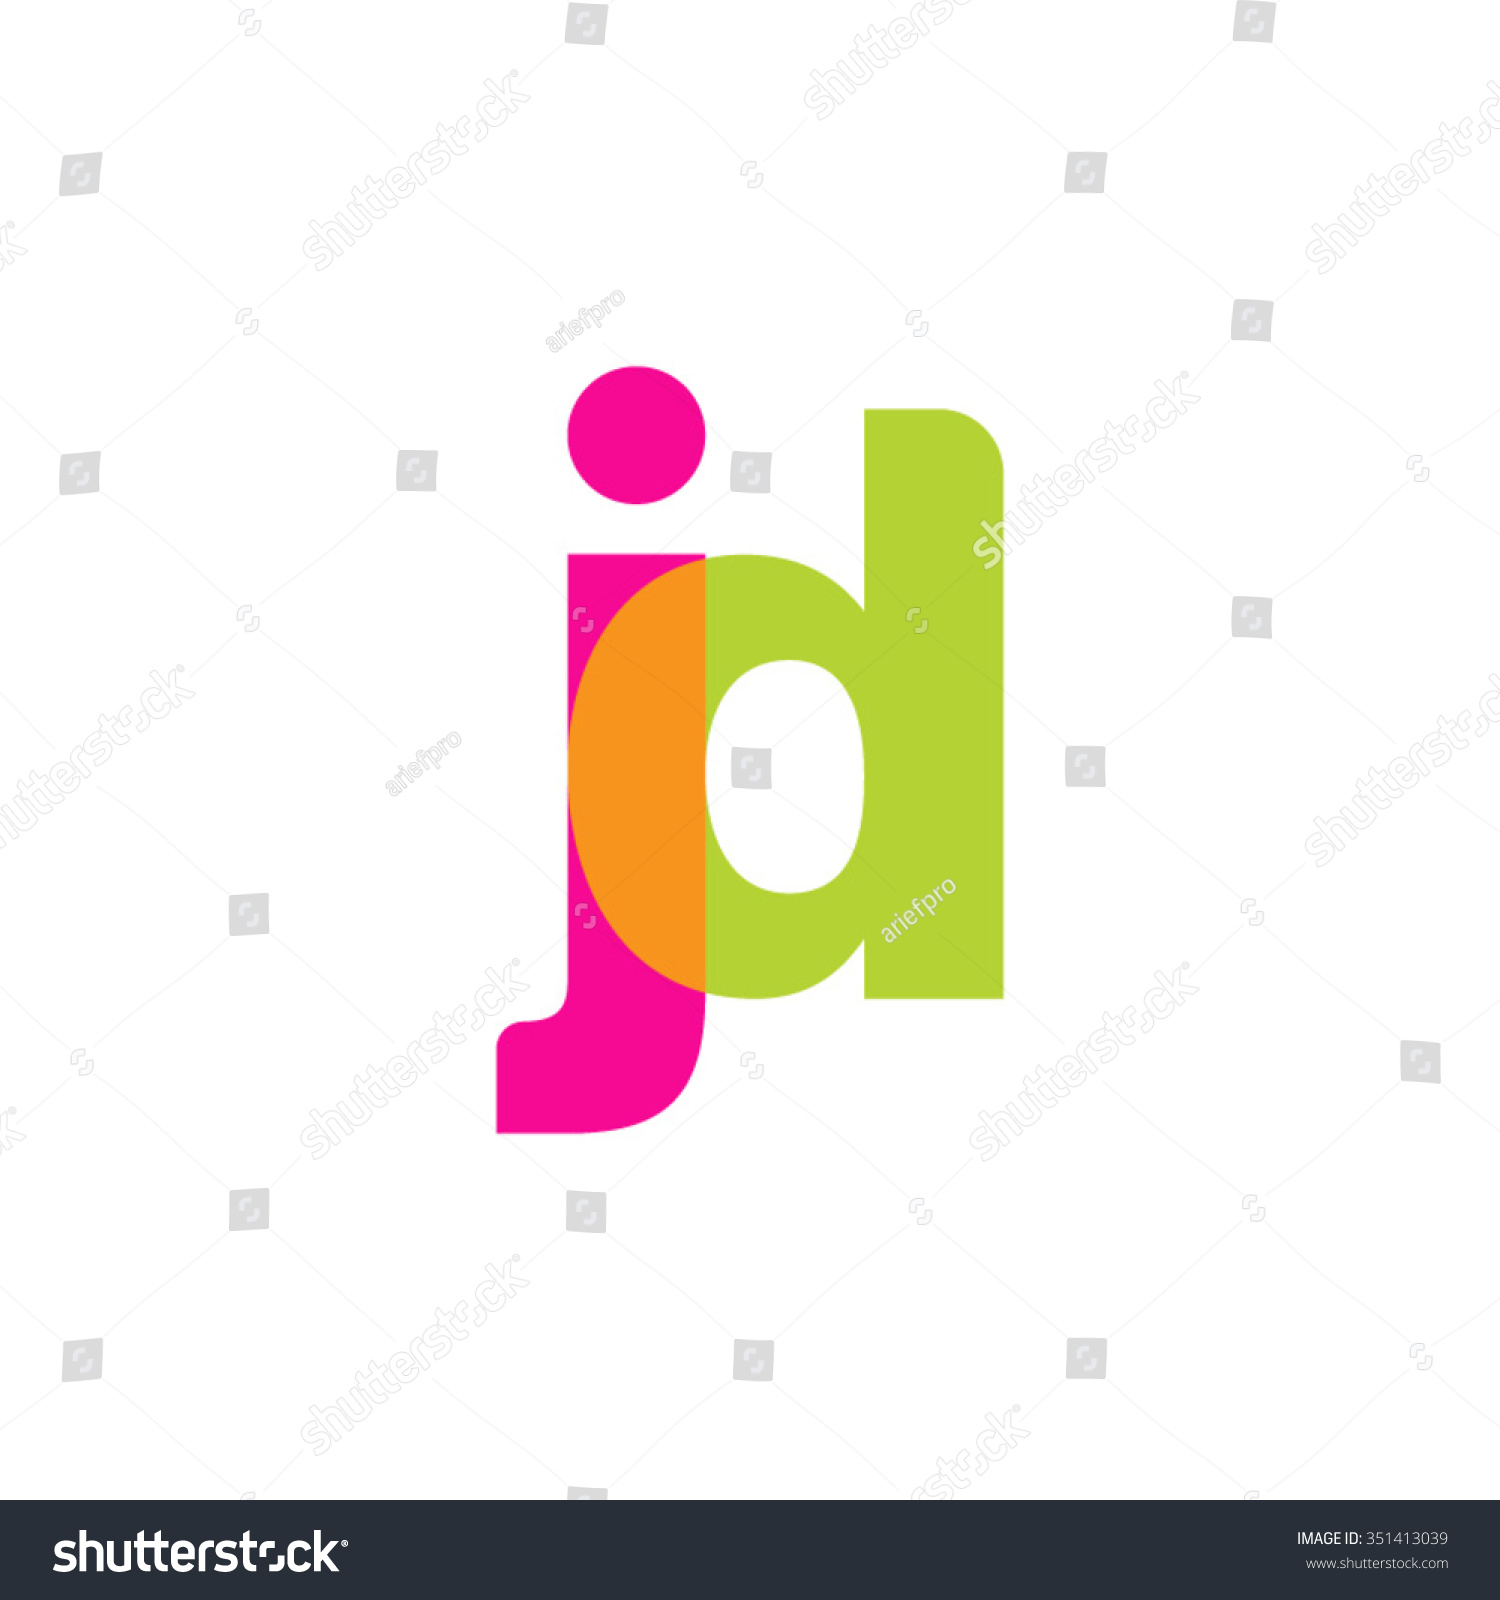 lowercase jd logo pink green overlap stock vector royalty free 351413039 shutterstock